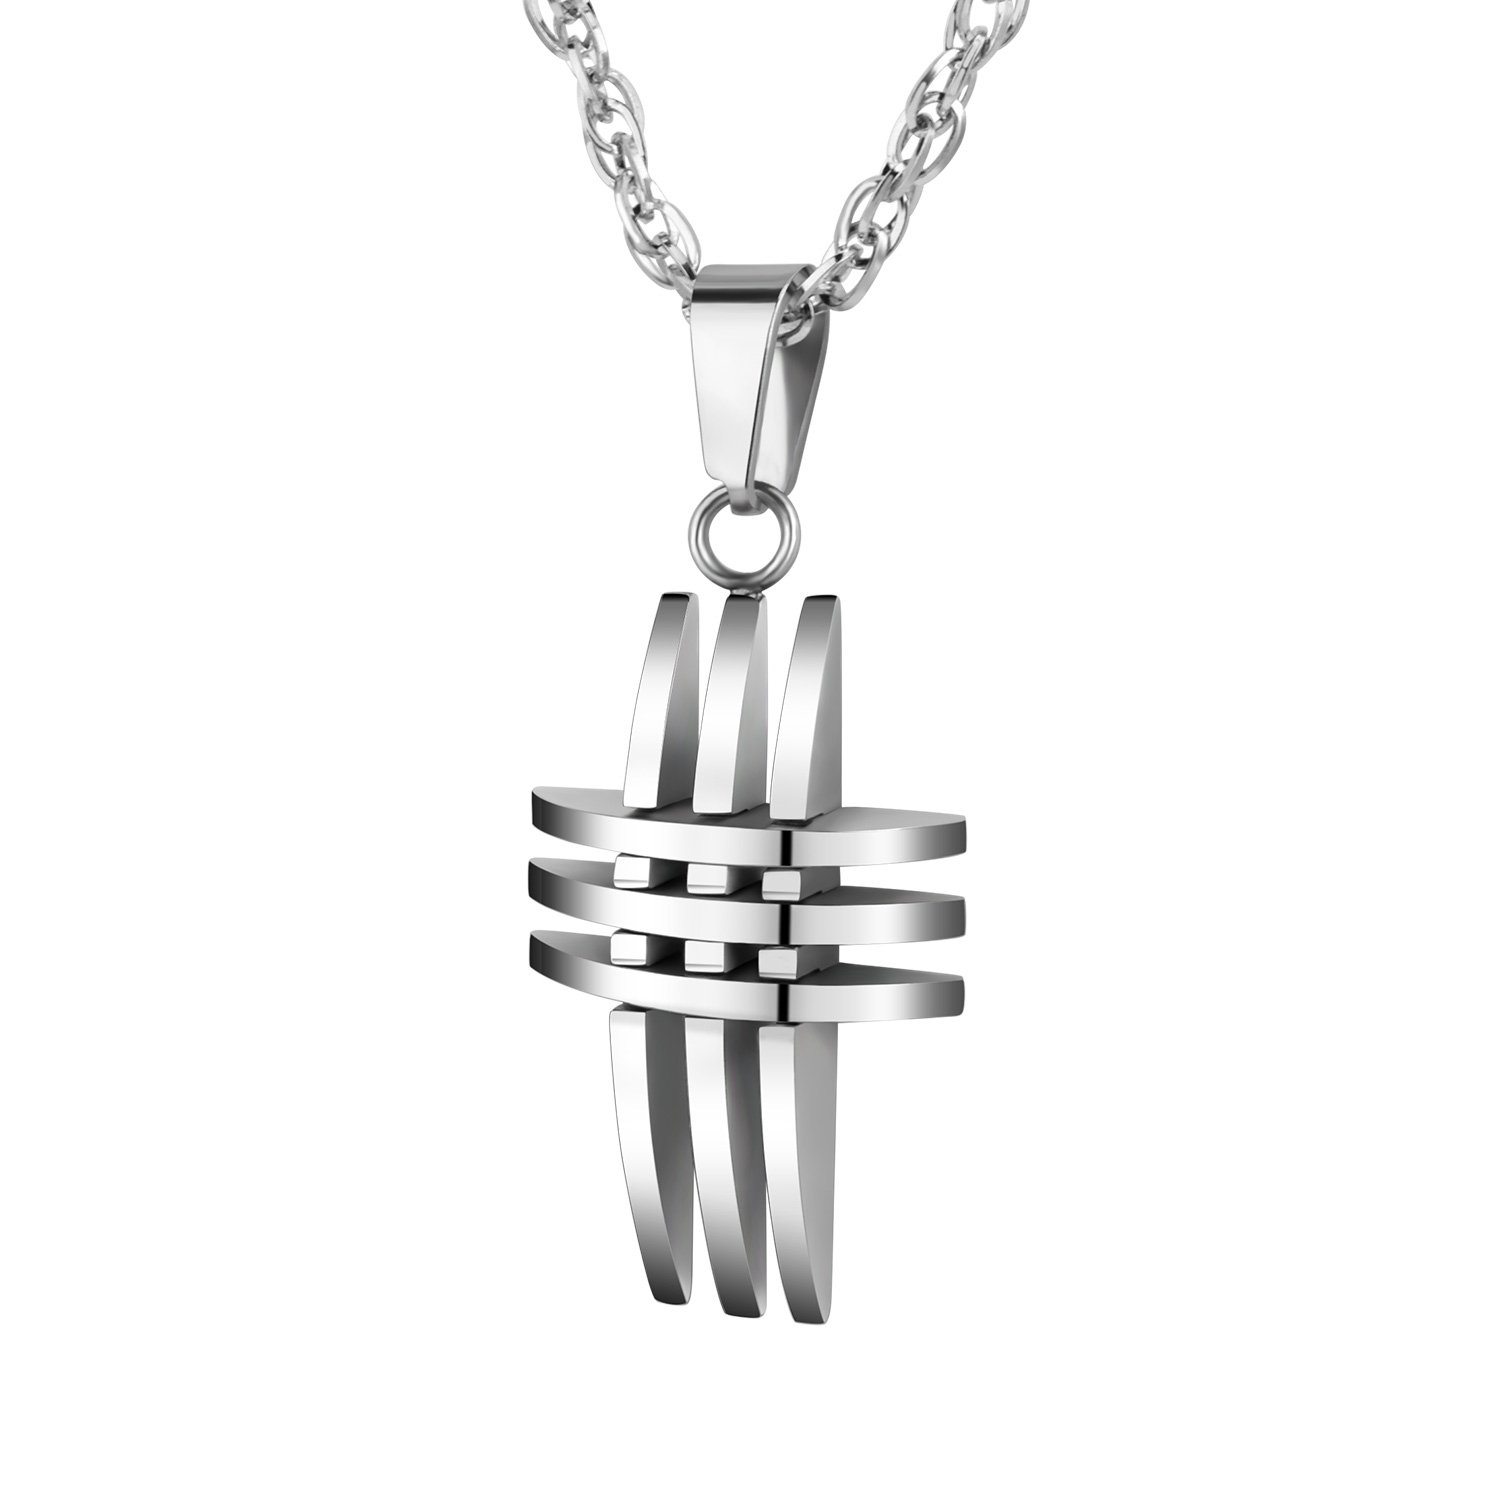 abooxiu Polished Stainless Steel Multilayer Cross Pendant Necklace 24 Inches